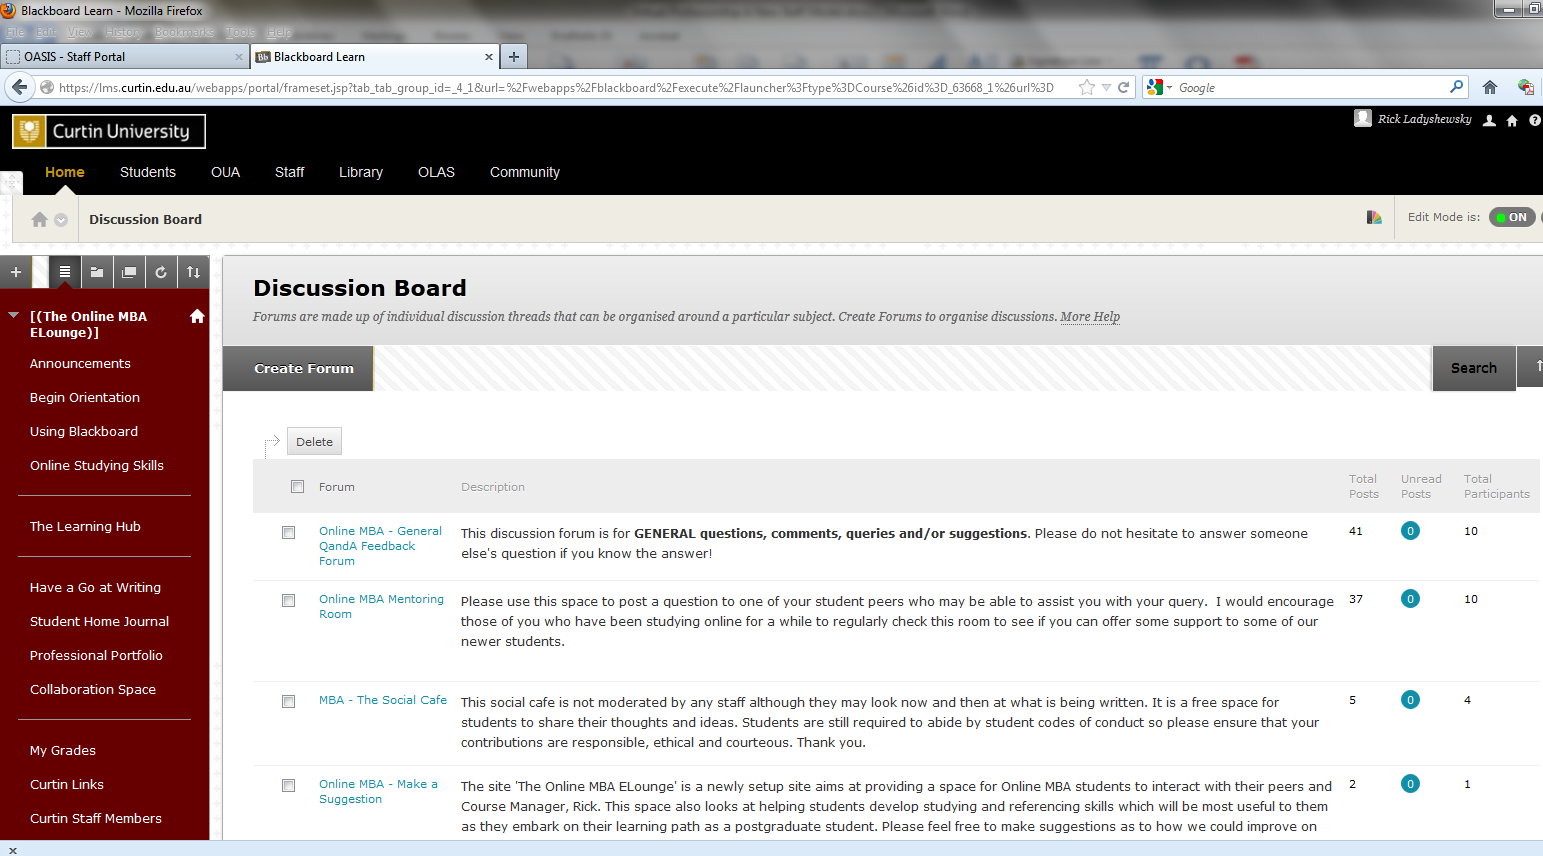 For example, orientation resources to support academic writing and online learning are also built in to the site.